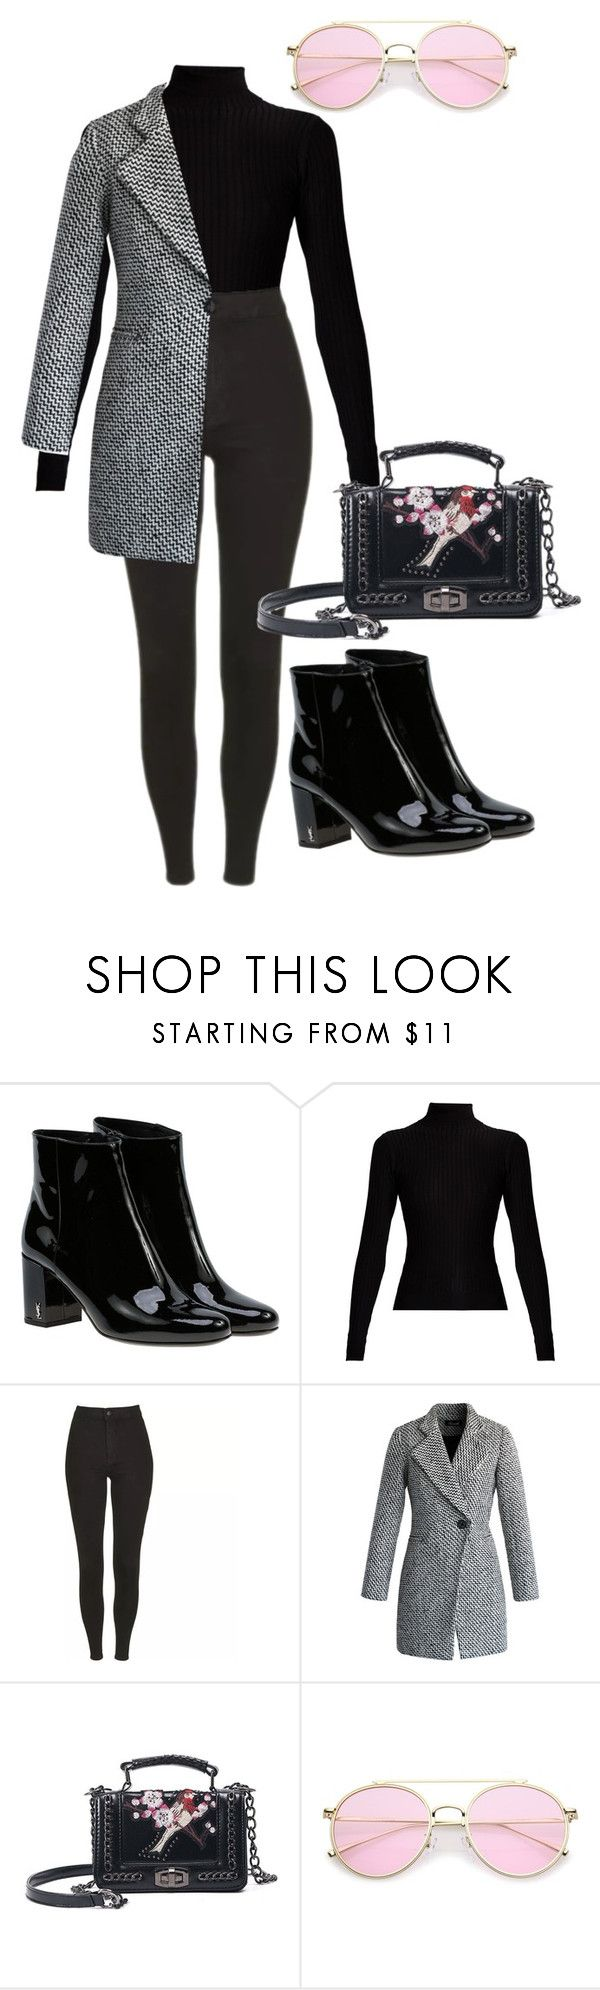 """""""Street style"""" by wiktoria-duszynska ❤ liked on Polyvore featuring Yves Saint Laurent, Acne Studios and Chicwish"""